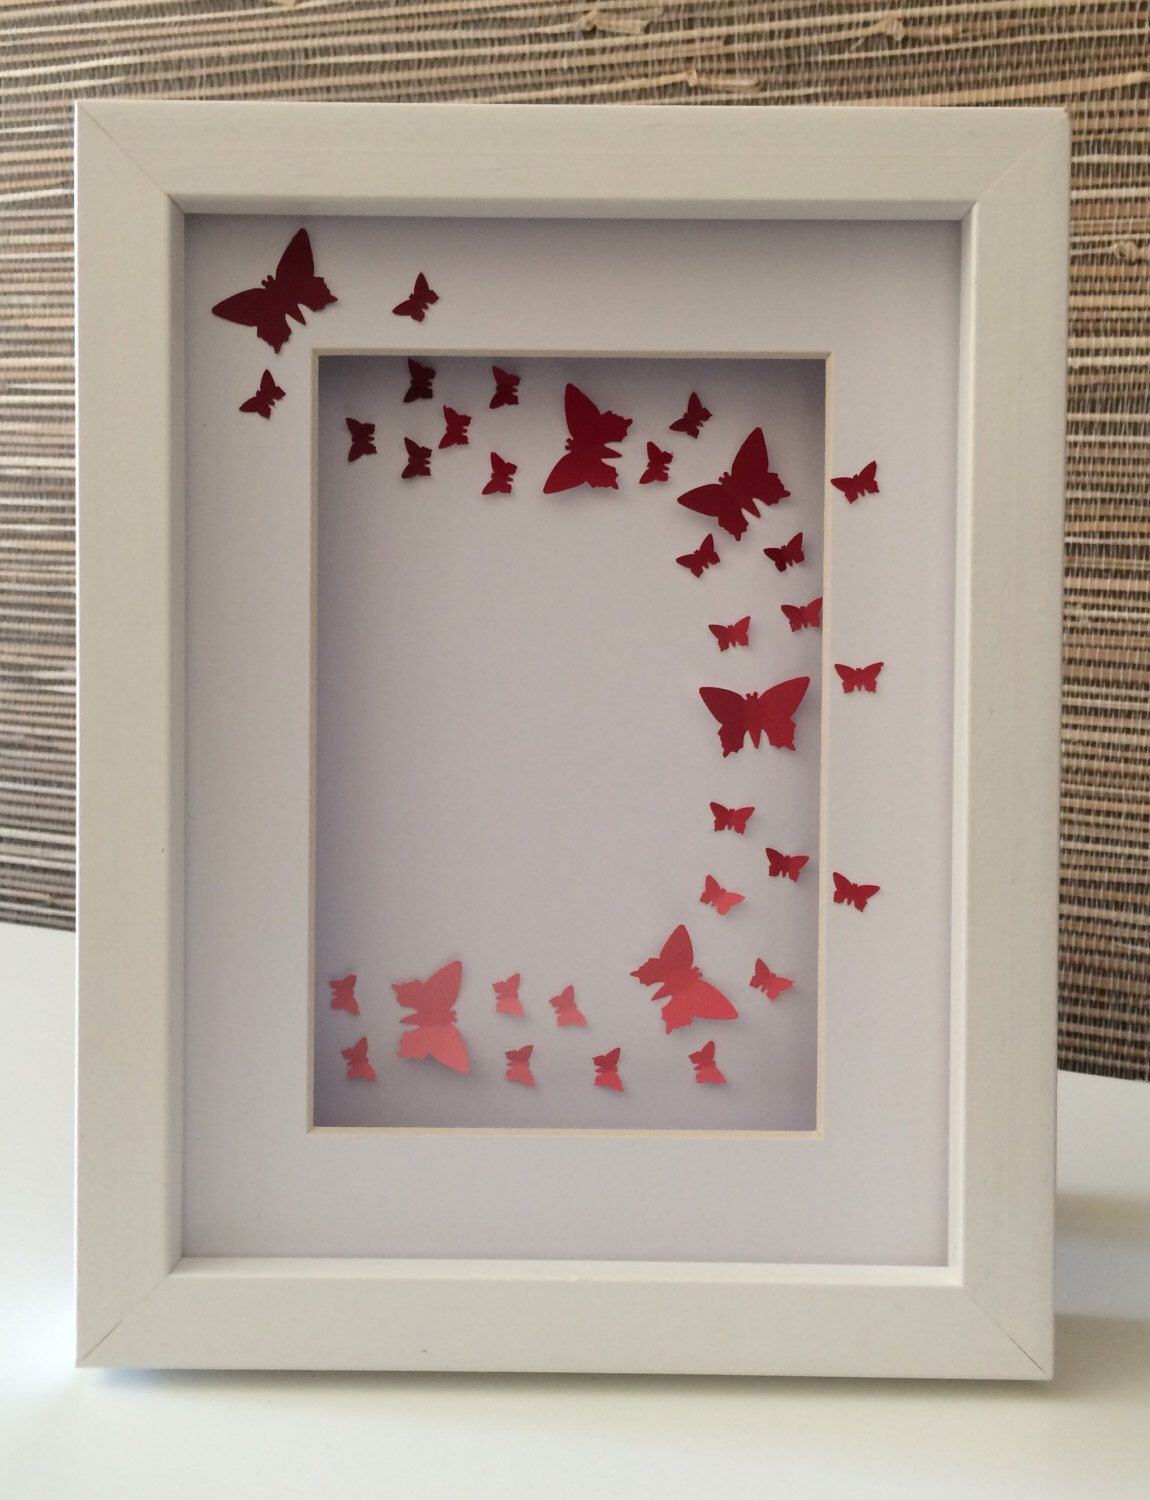 Red butterflies flying in an arc on a white background in a white red butterflies flying in an arc on a white background in a white box frame jeuxipadfo Gallery